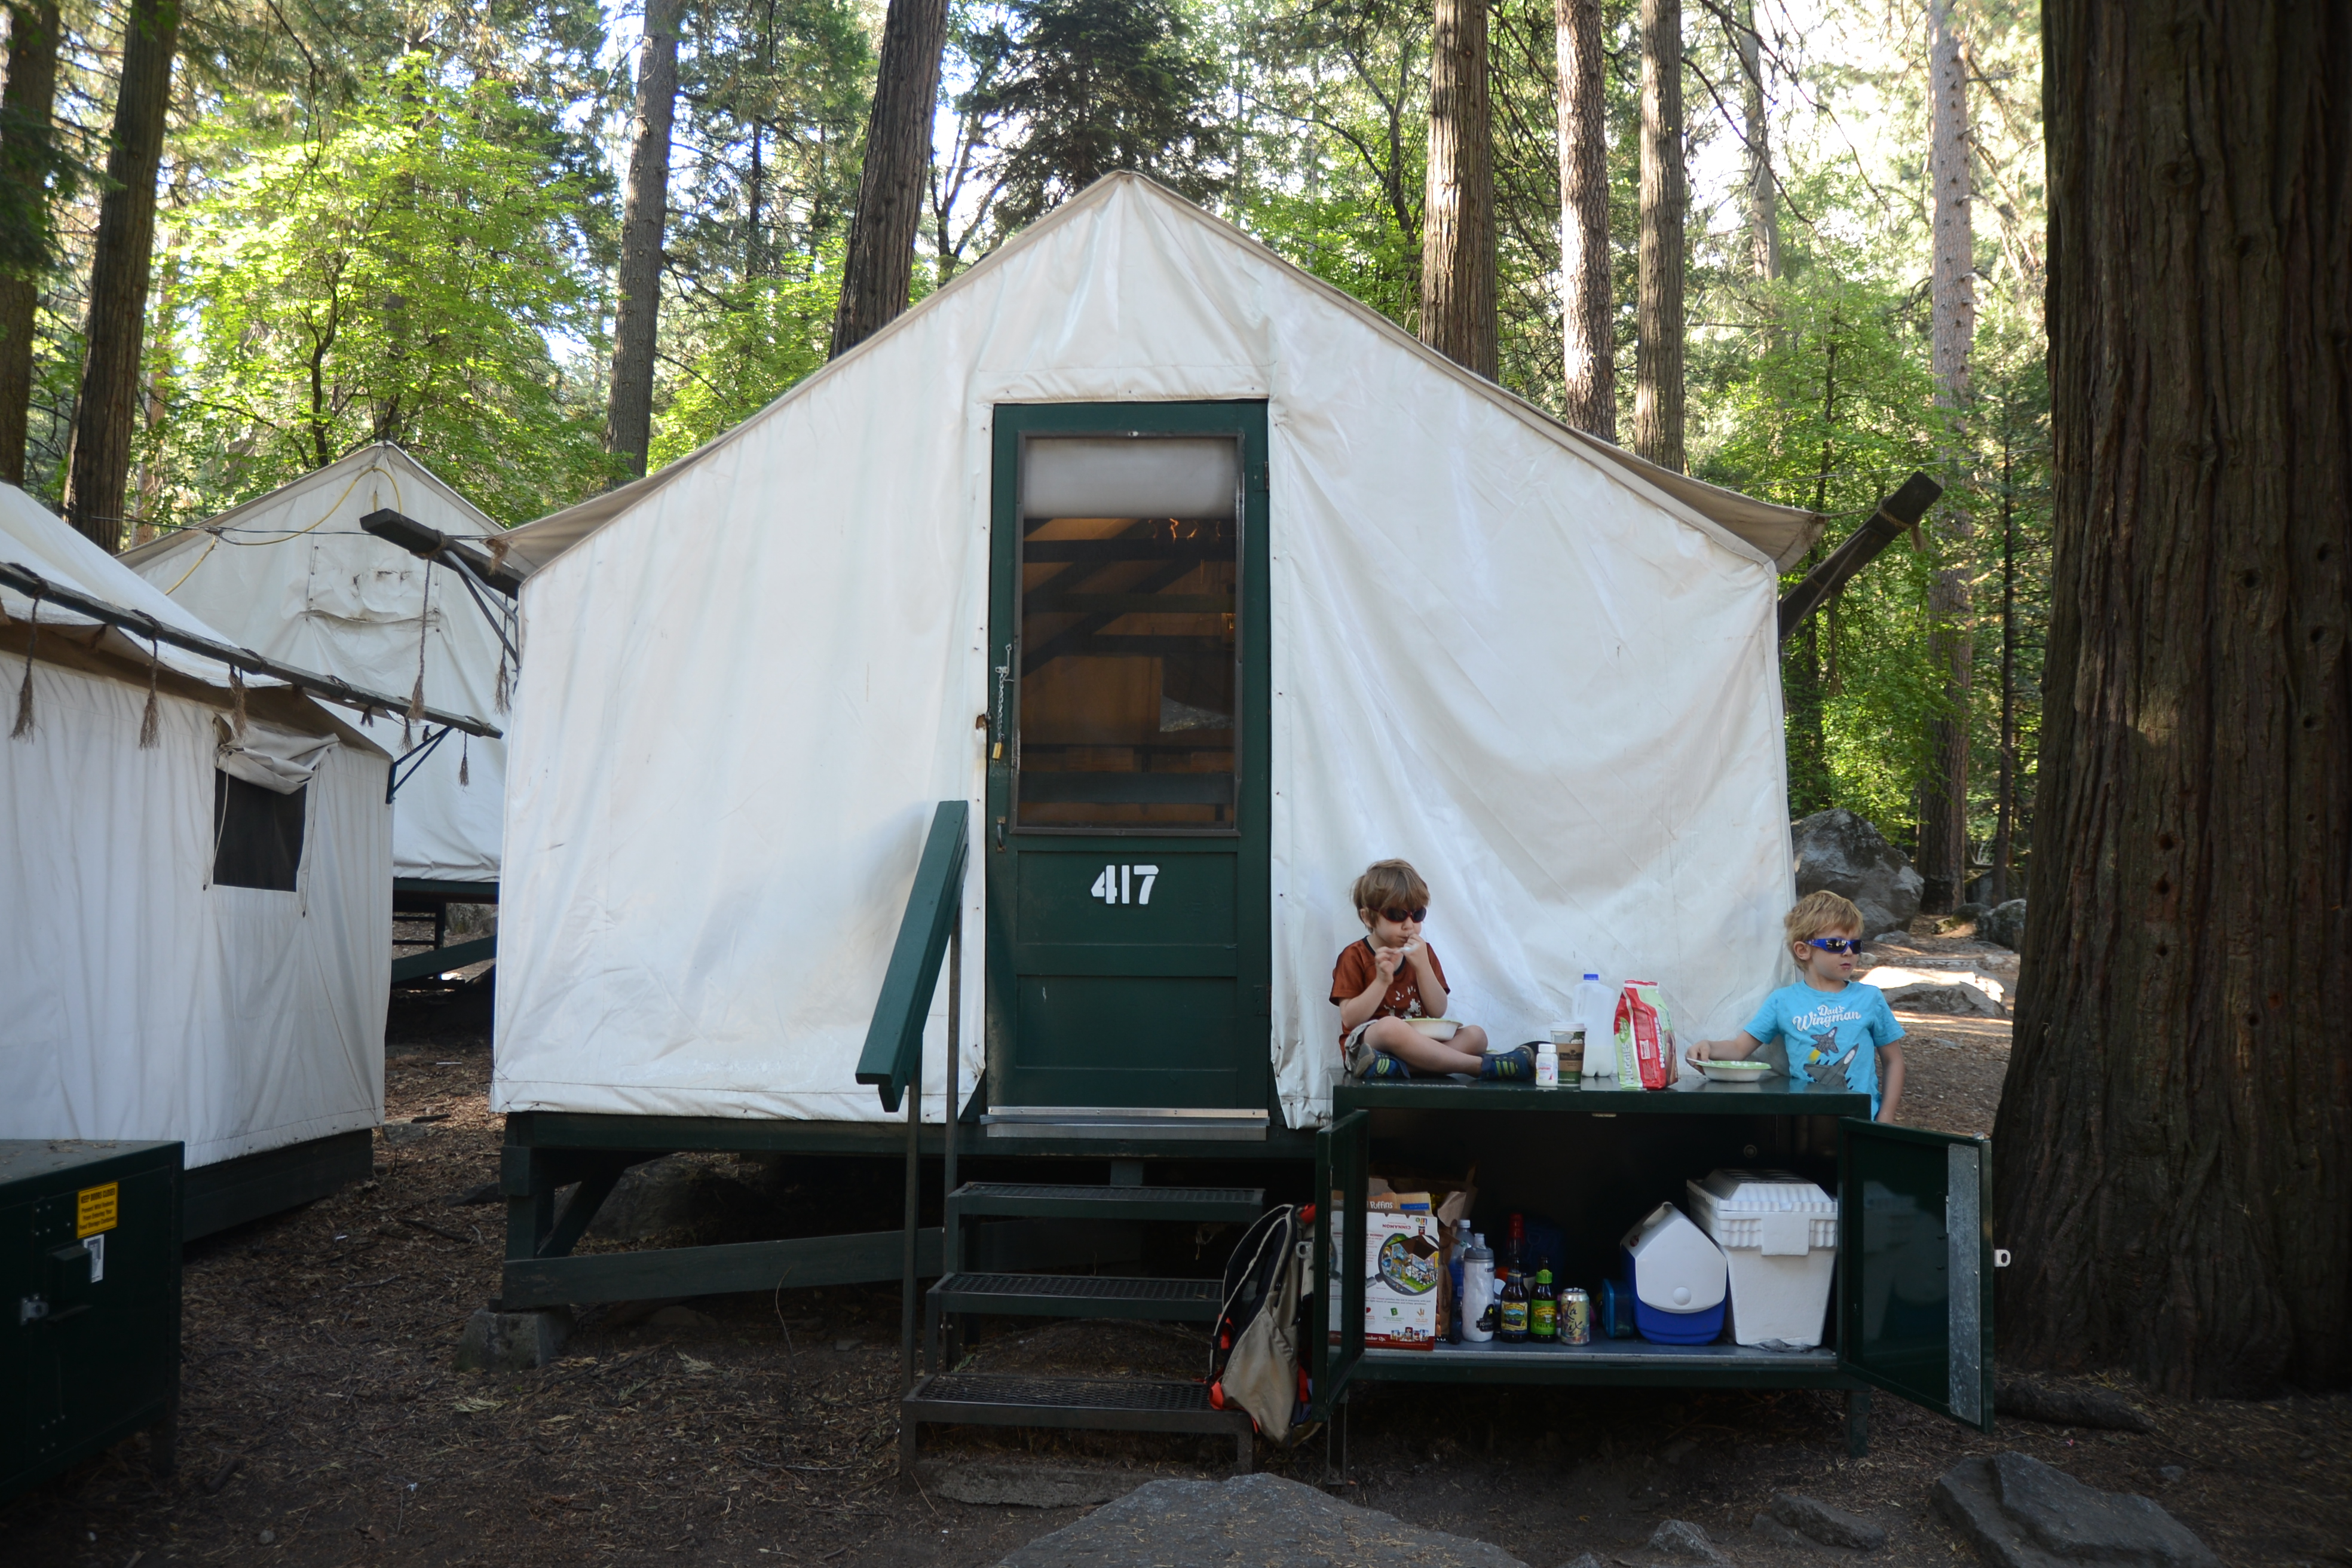 bass minutes log hotels camping just lake stay and cabins cabin lodging yosemite lodges from mounts